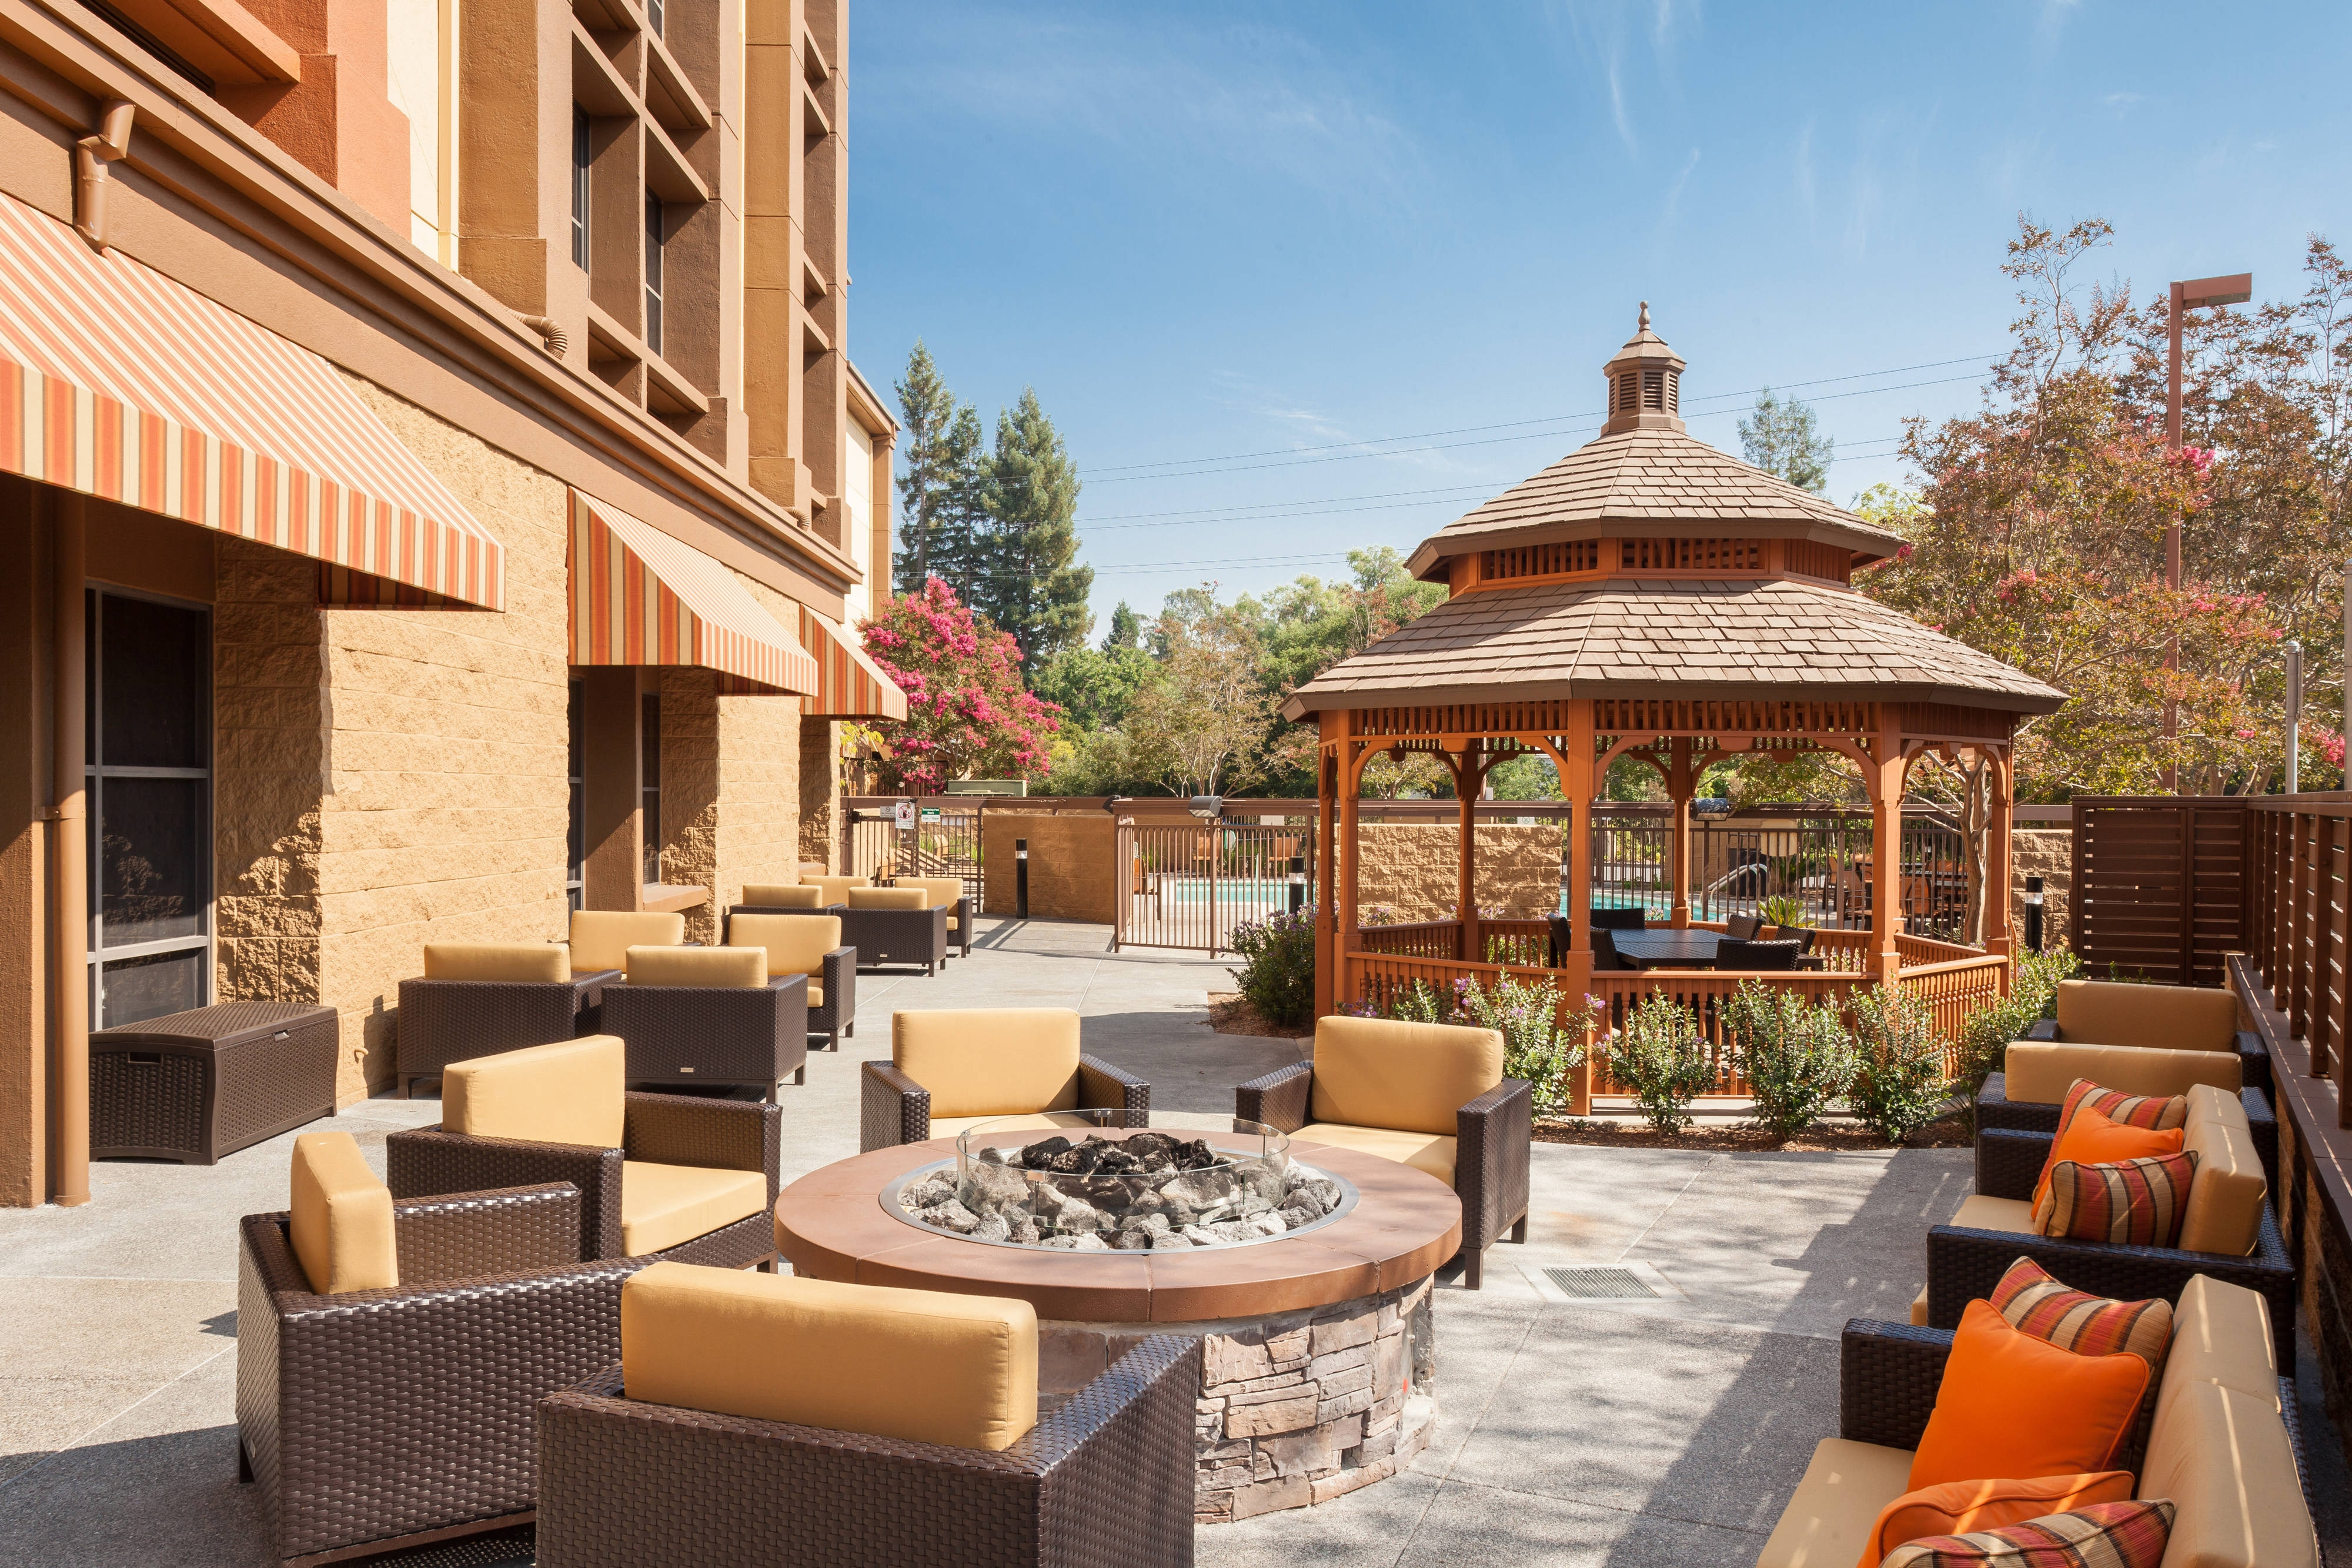 Courtyard by Marriott Santa Rosa Patio & Gazebo